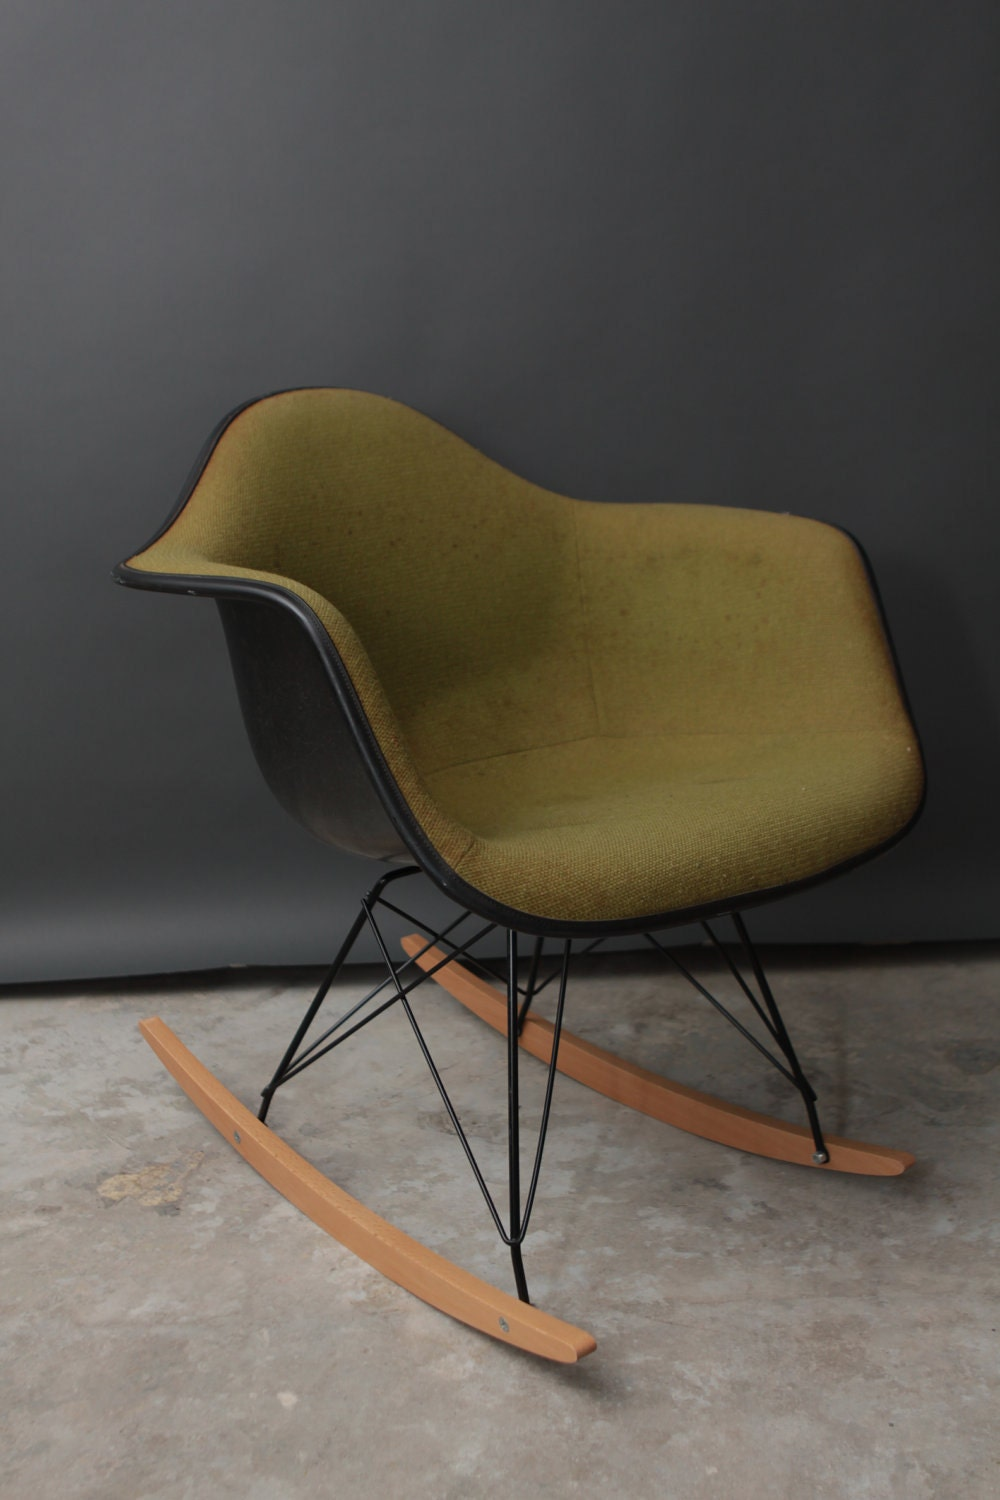 Vintage herman miller eames fabric rocking chair by thedriftingfox - Herman miller chair eames ...